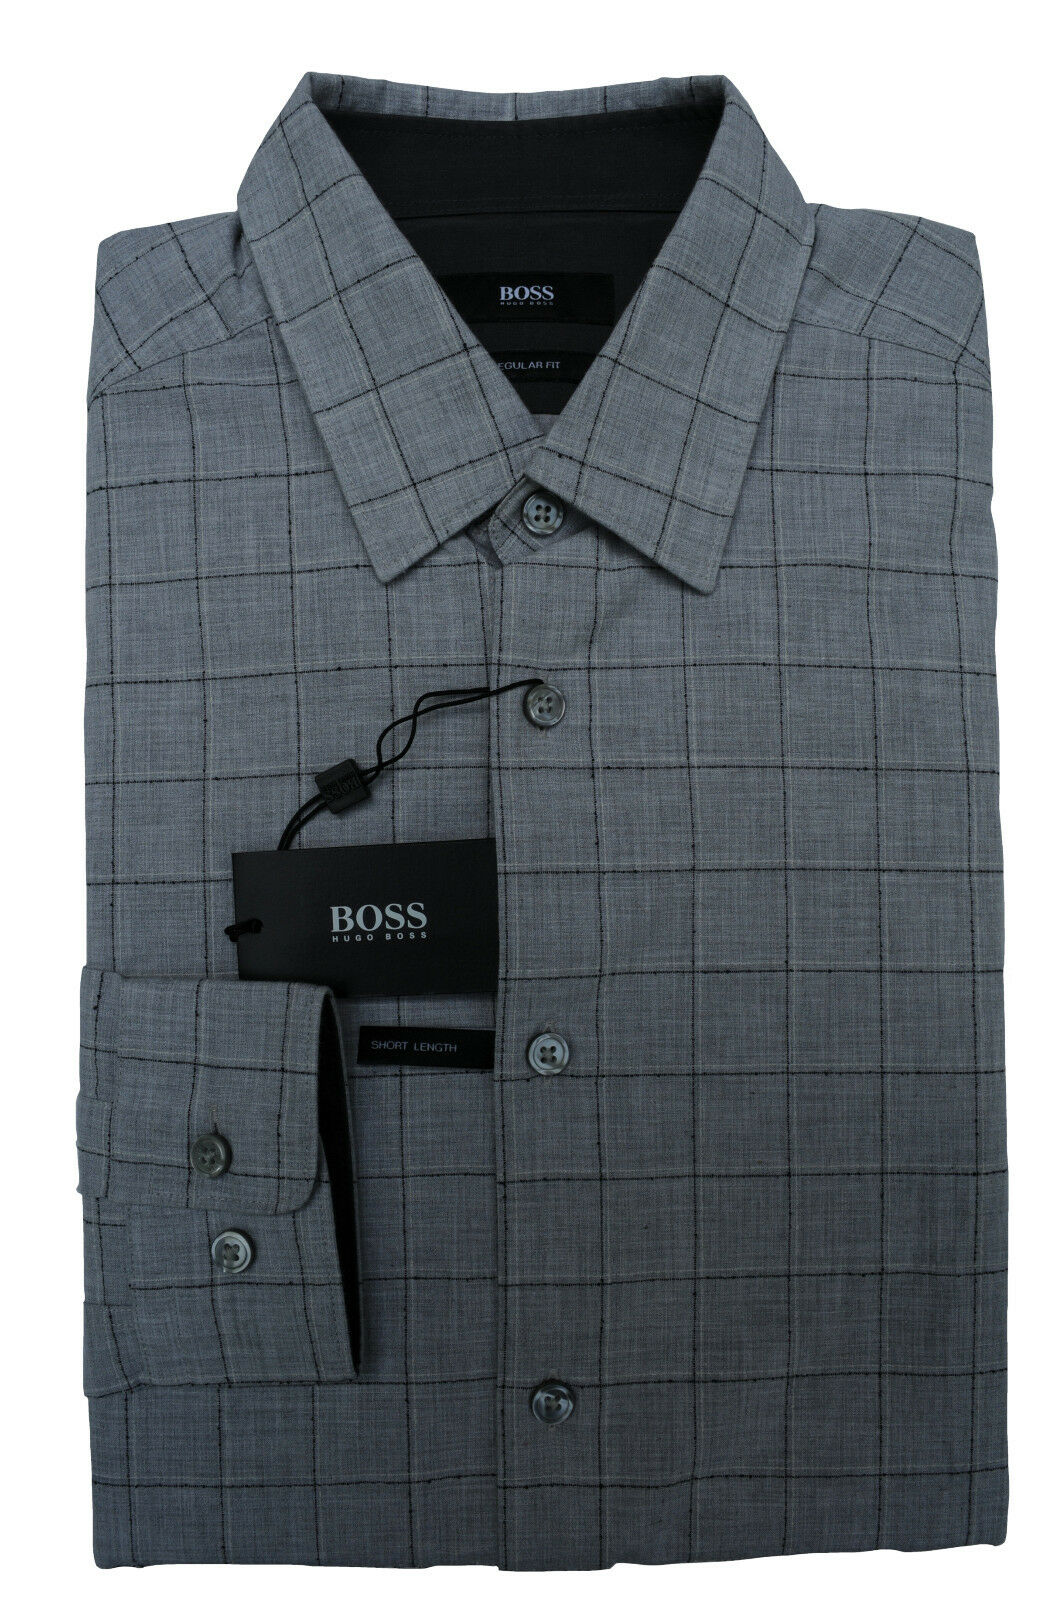 NEU gr. M HUGO BOSS HEMD JLANCE OPEN-GREY REGULAR FIT 50373206